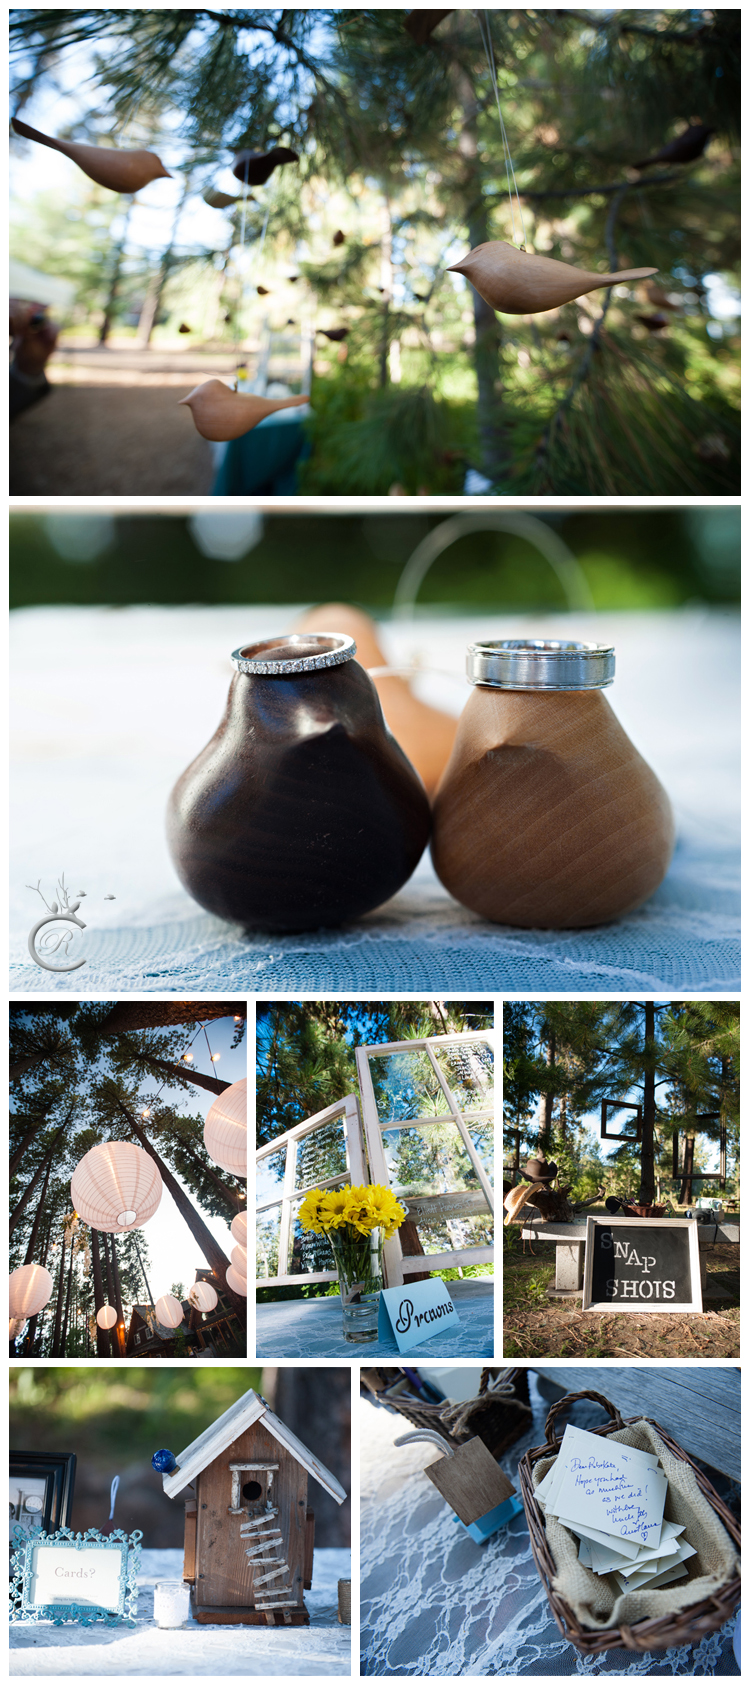 Wooden birds and birdhouse wedding details